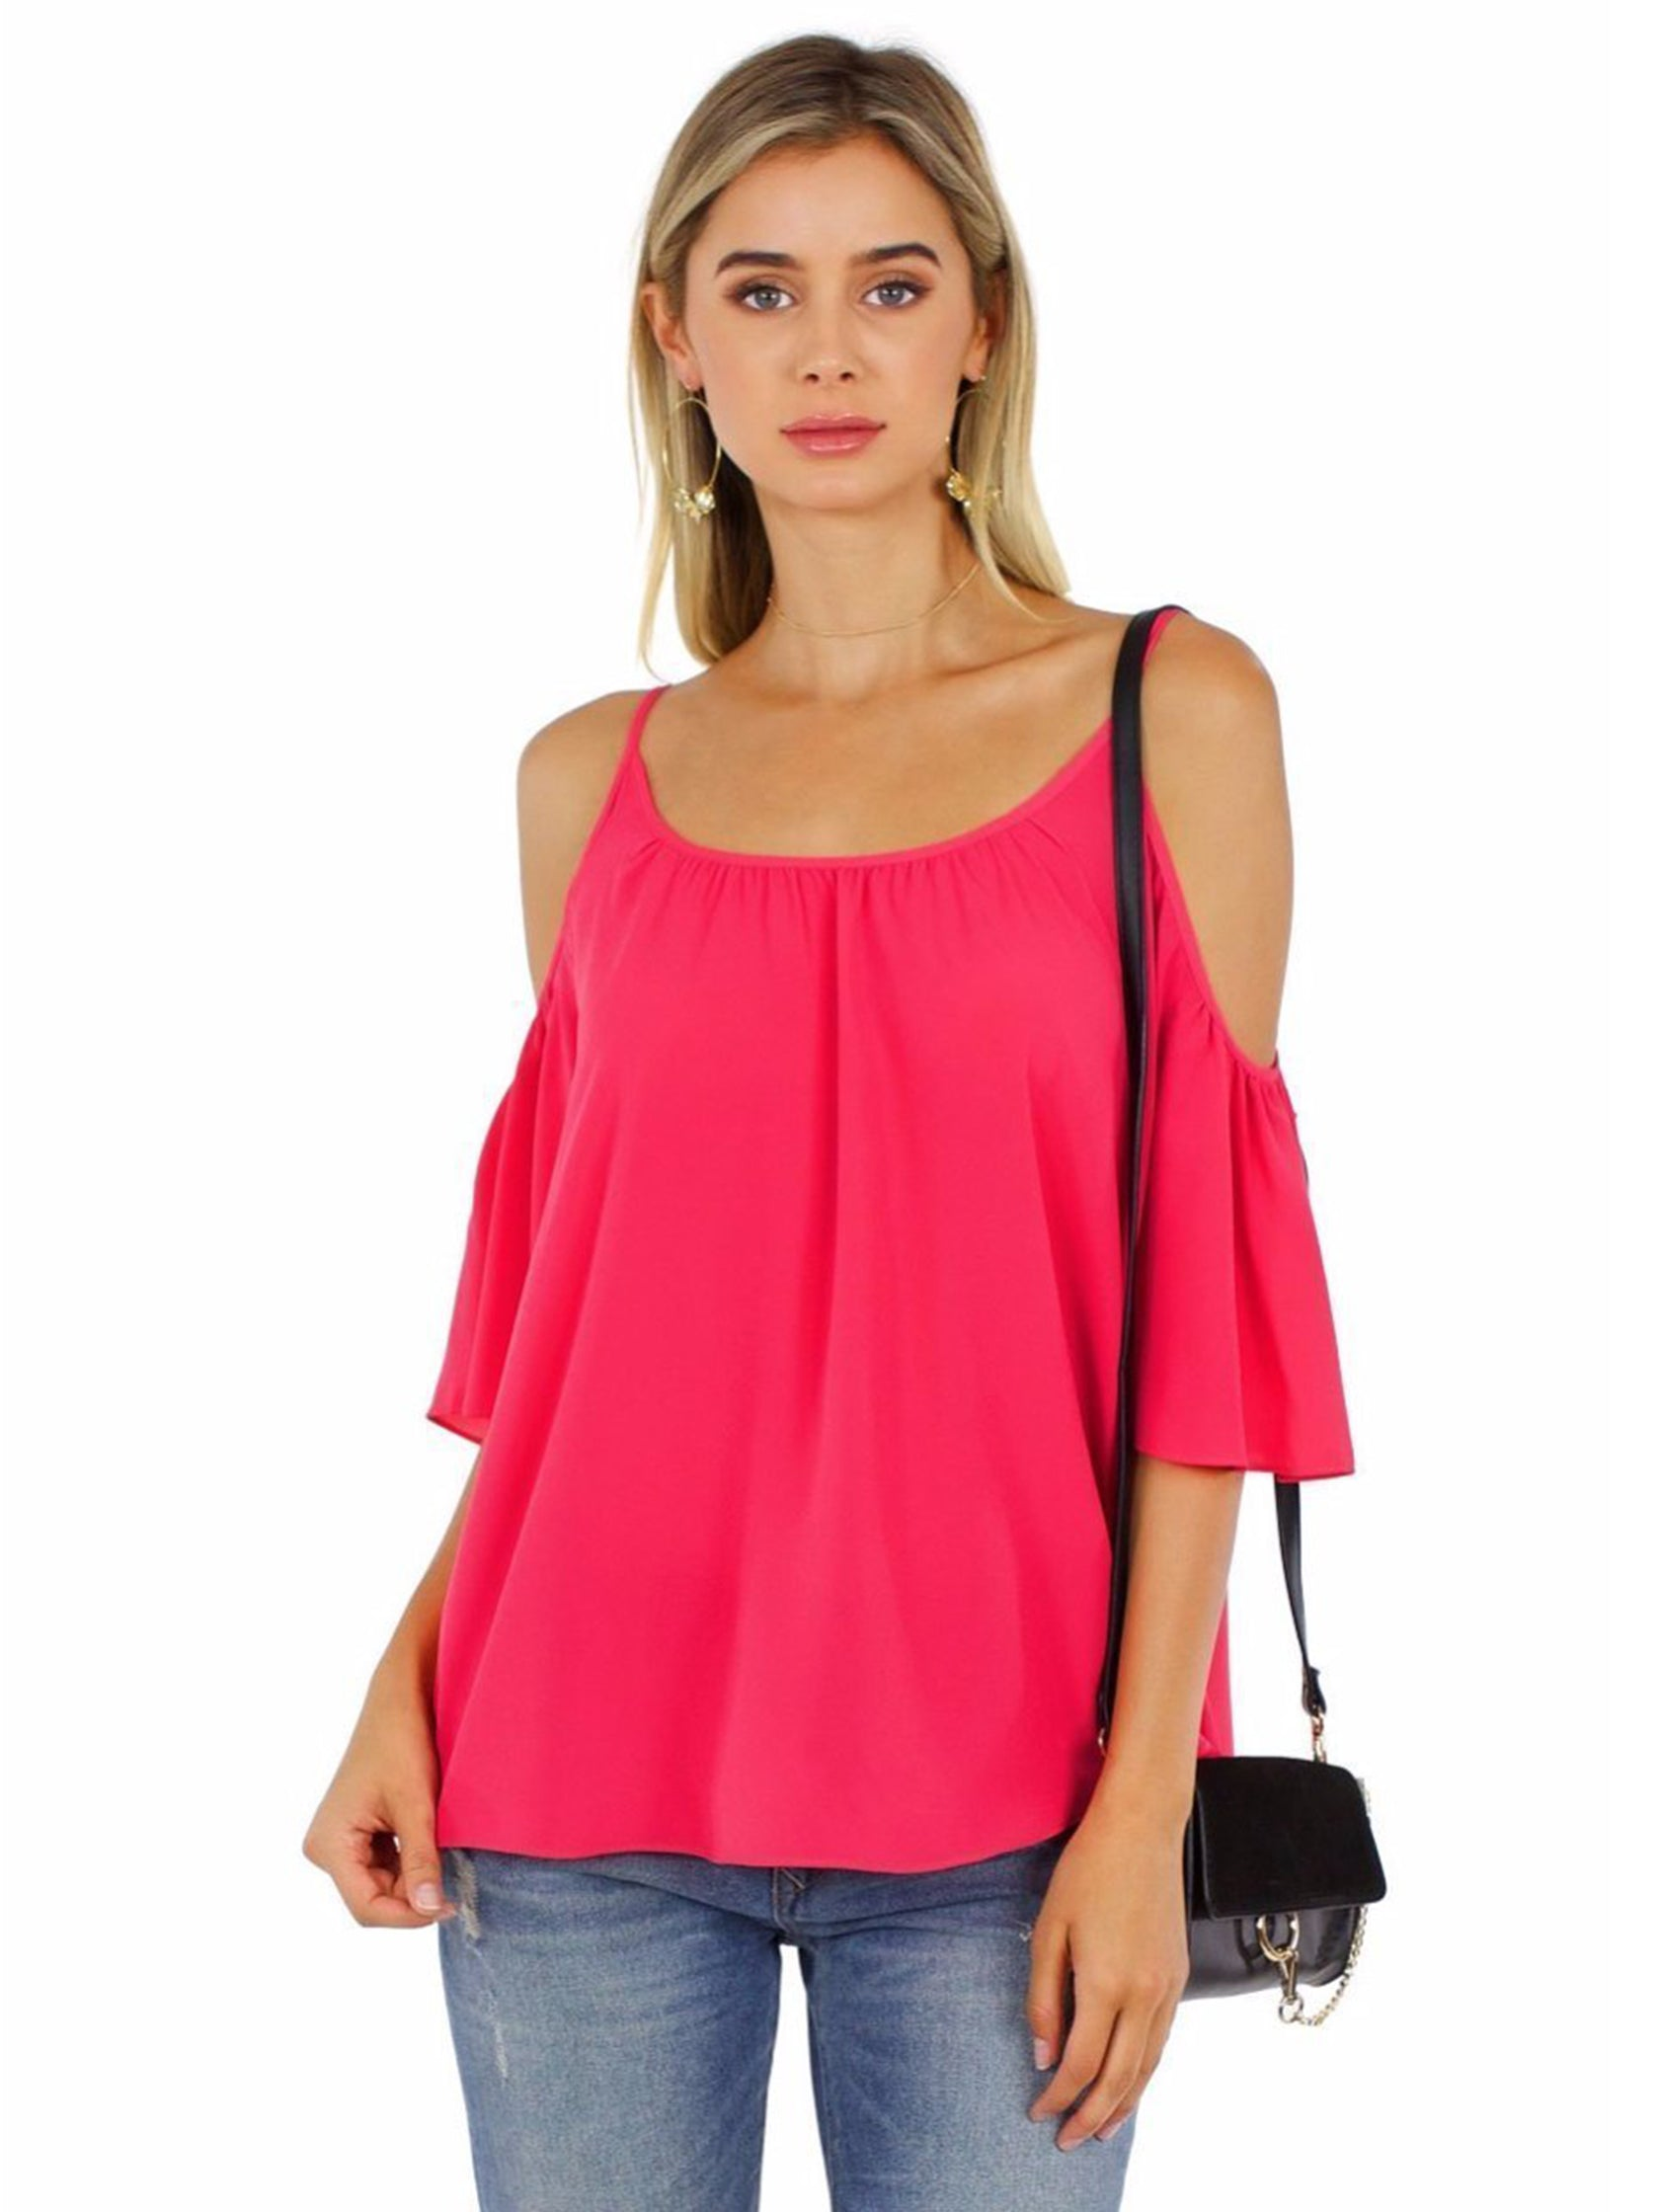 Girl outfit in a top rental from French Connection called Crepe Light Cut Out Shoulder Top